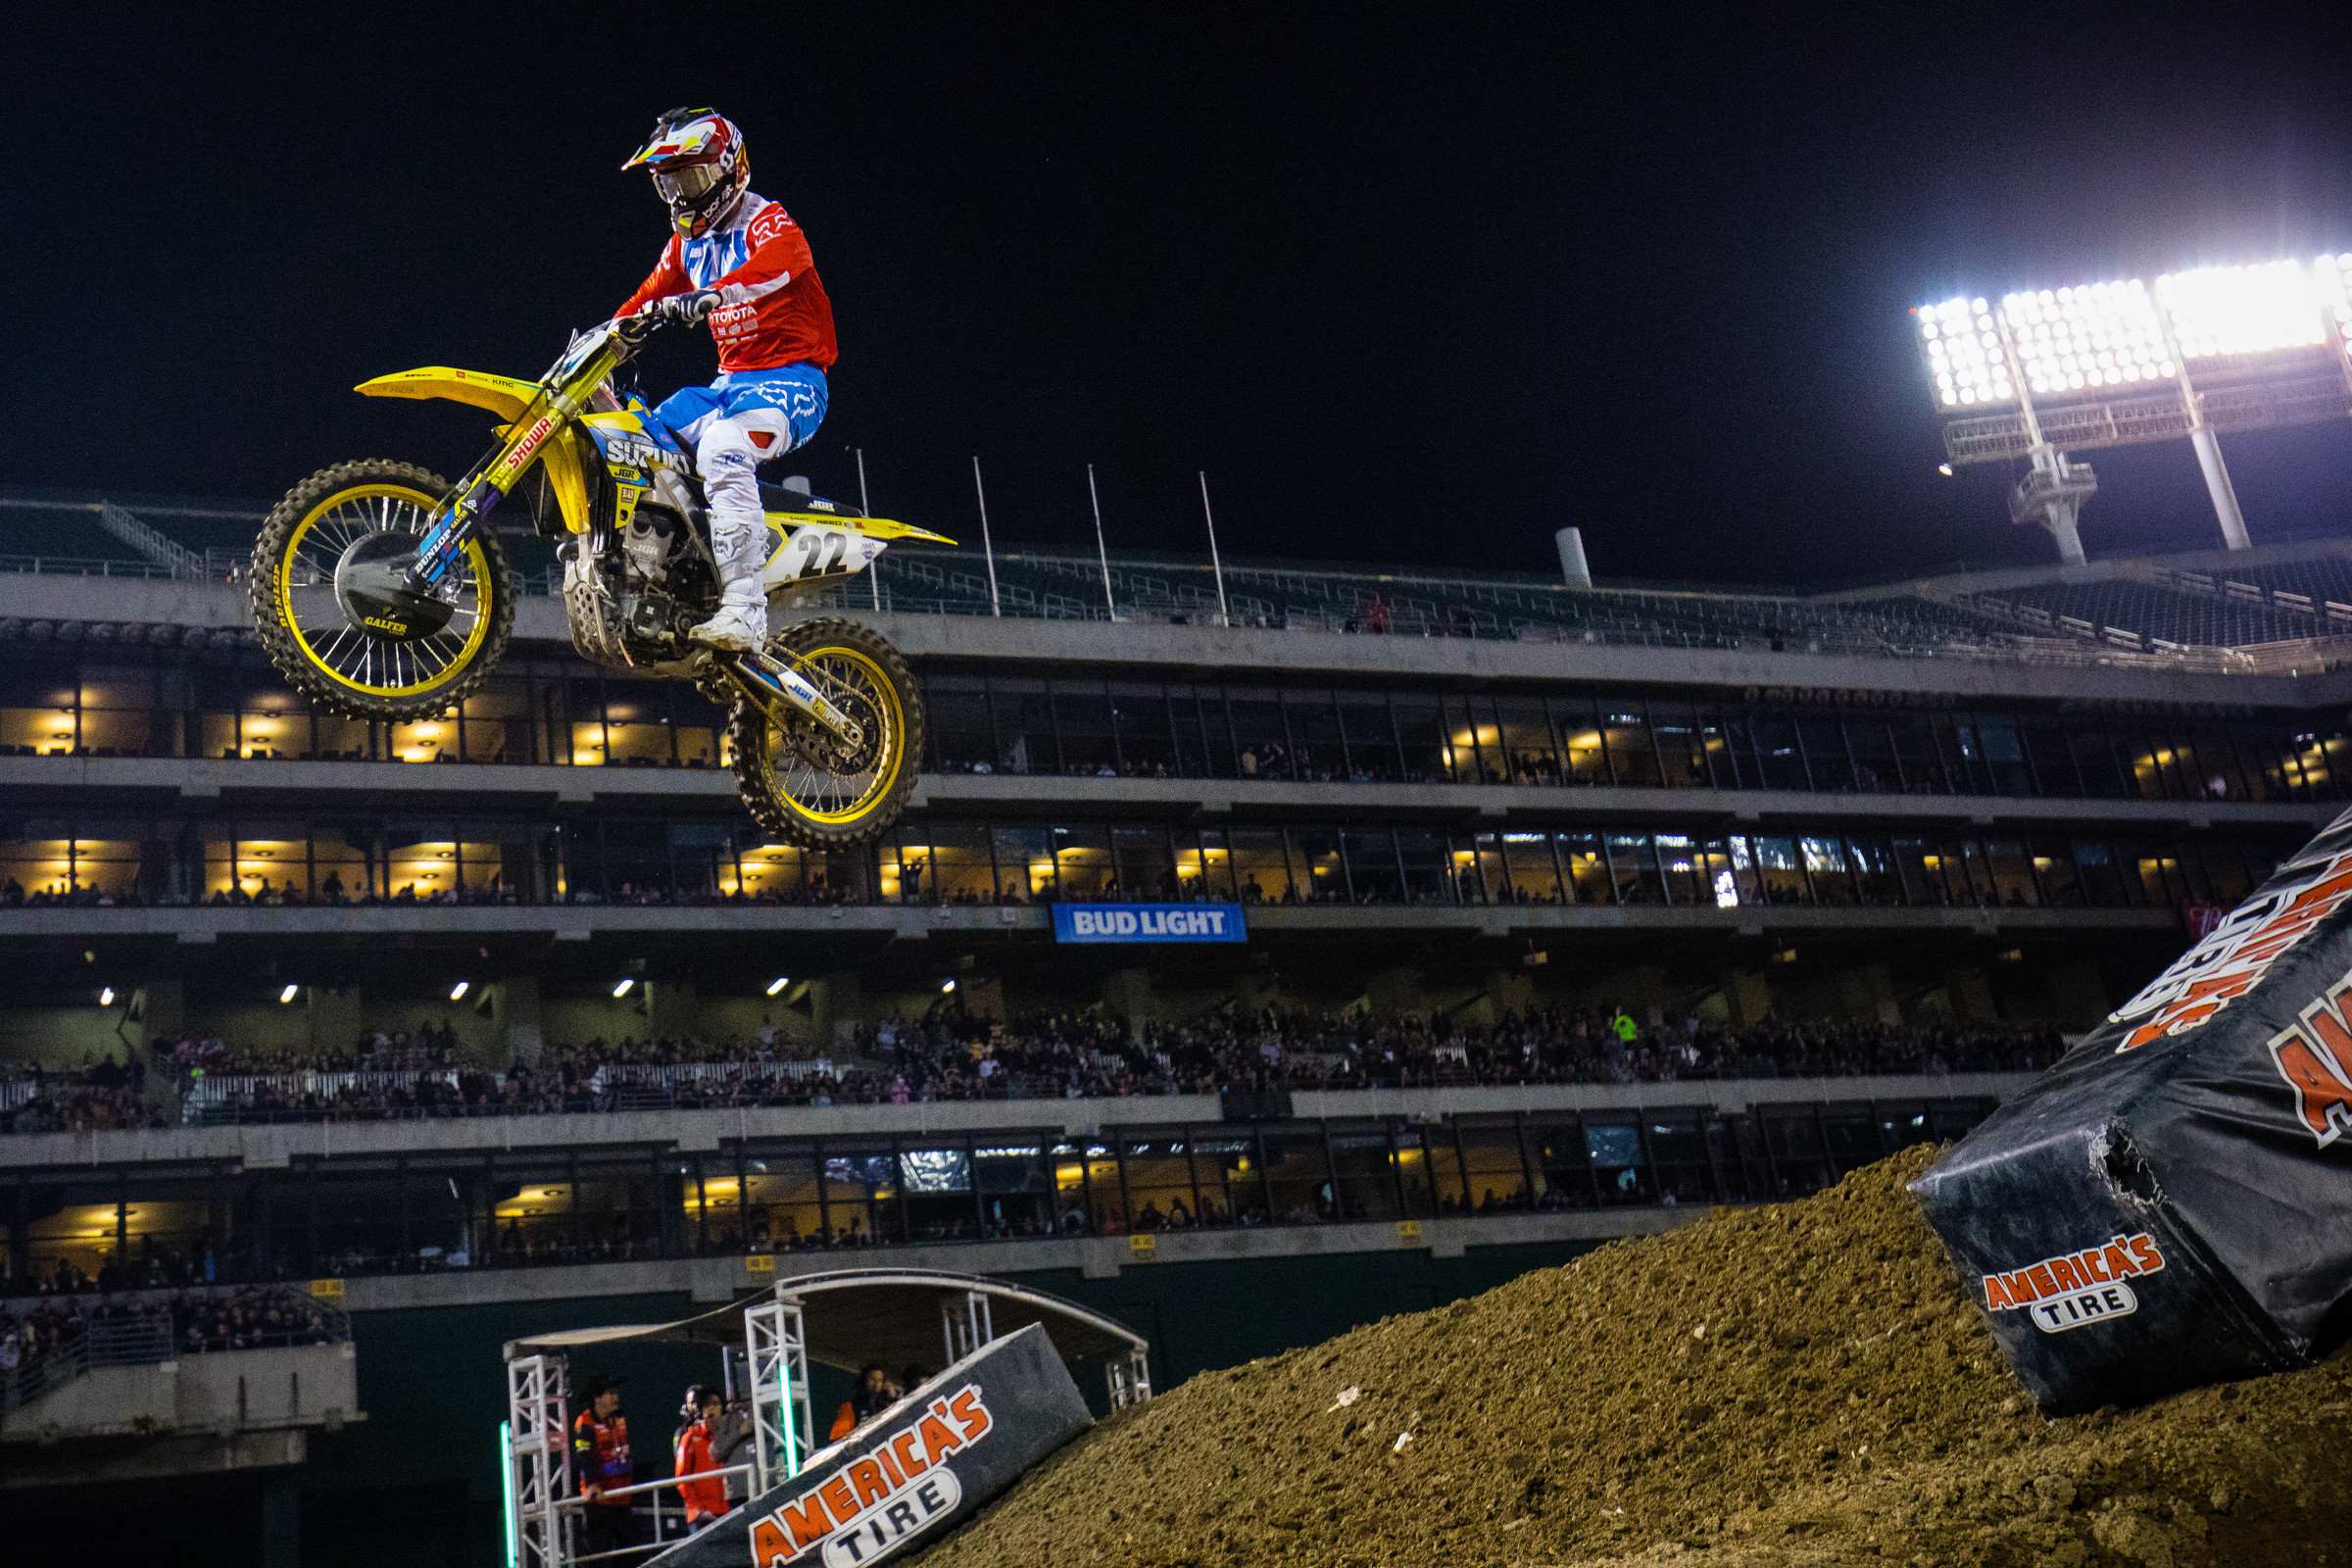 Chad Reed holds more San Diego supercross wins than anyone else in the history of the championship, with six total in the premier class.